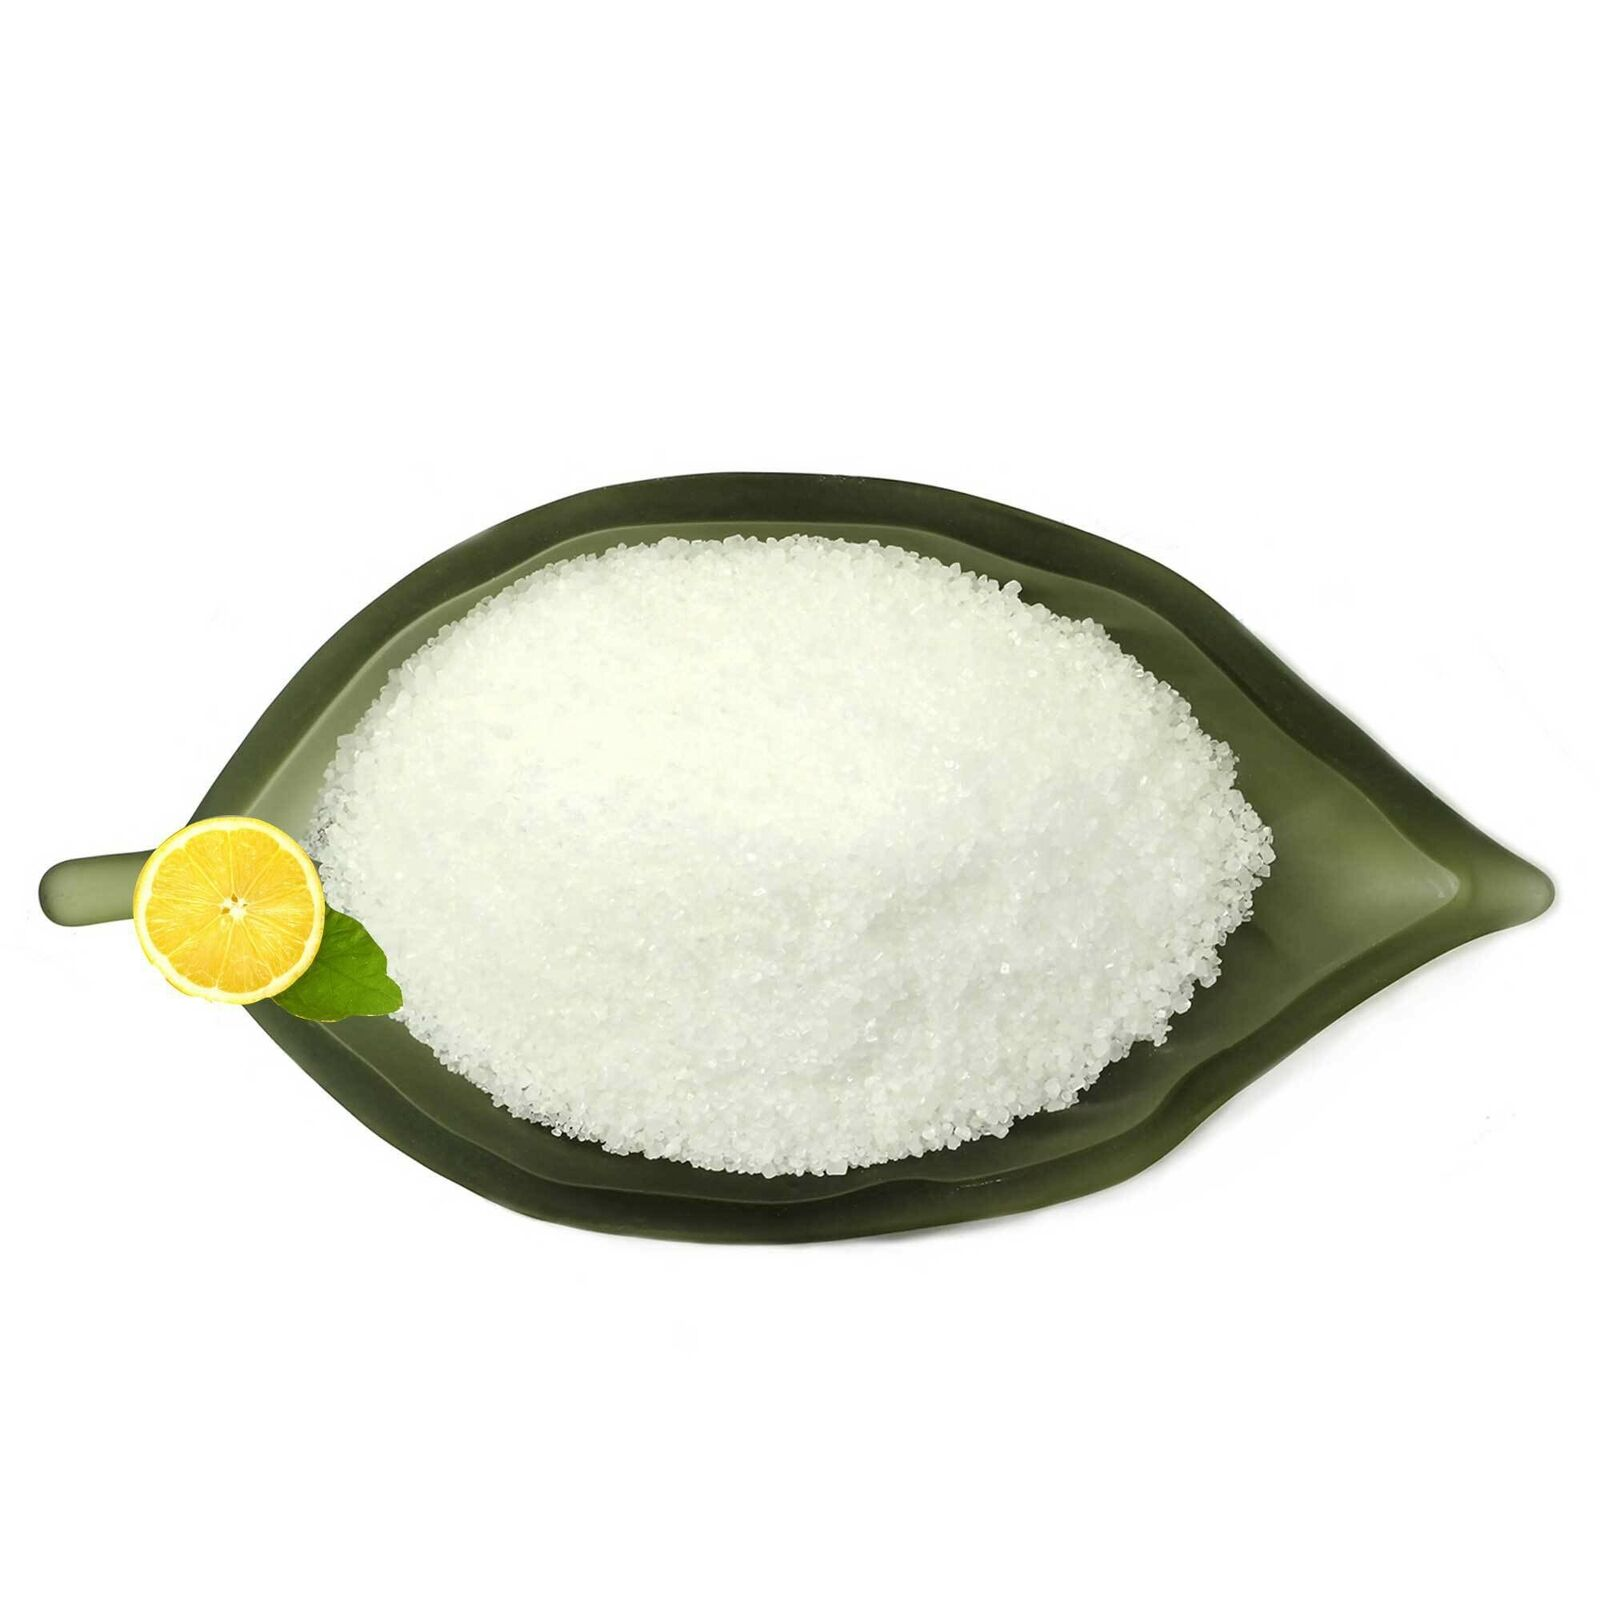 CITRIC ACID Food Grade Anhydrous 100g 200g 500g 1Kg 2Kg ...